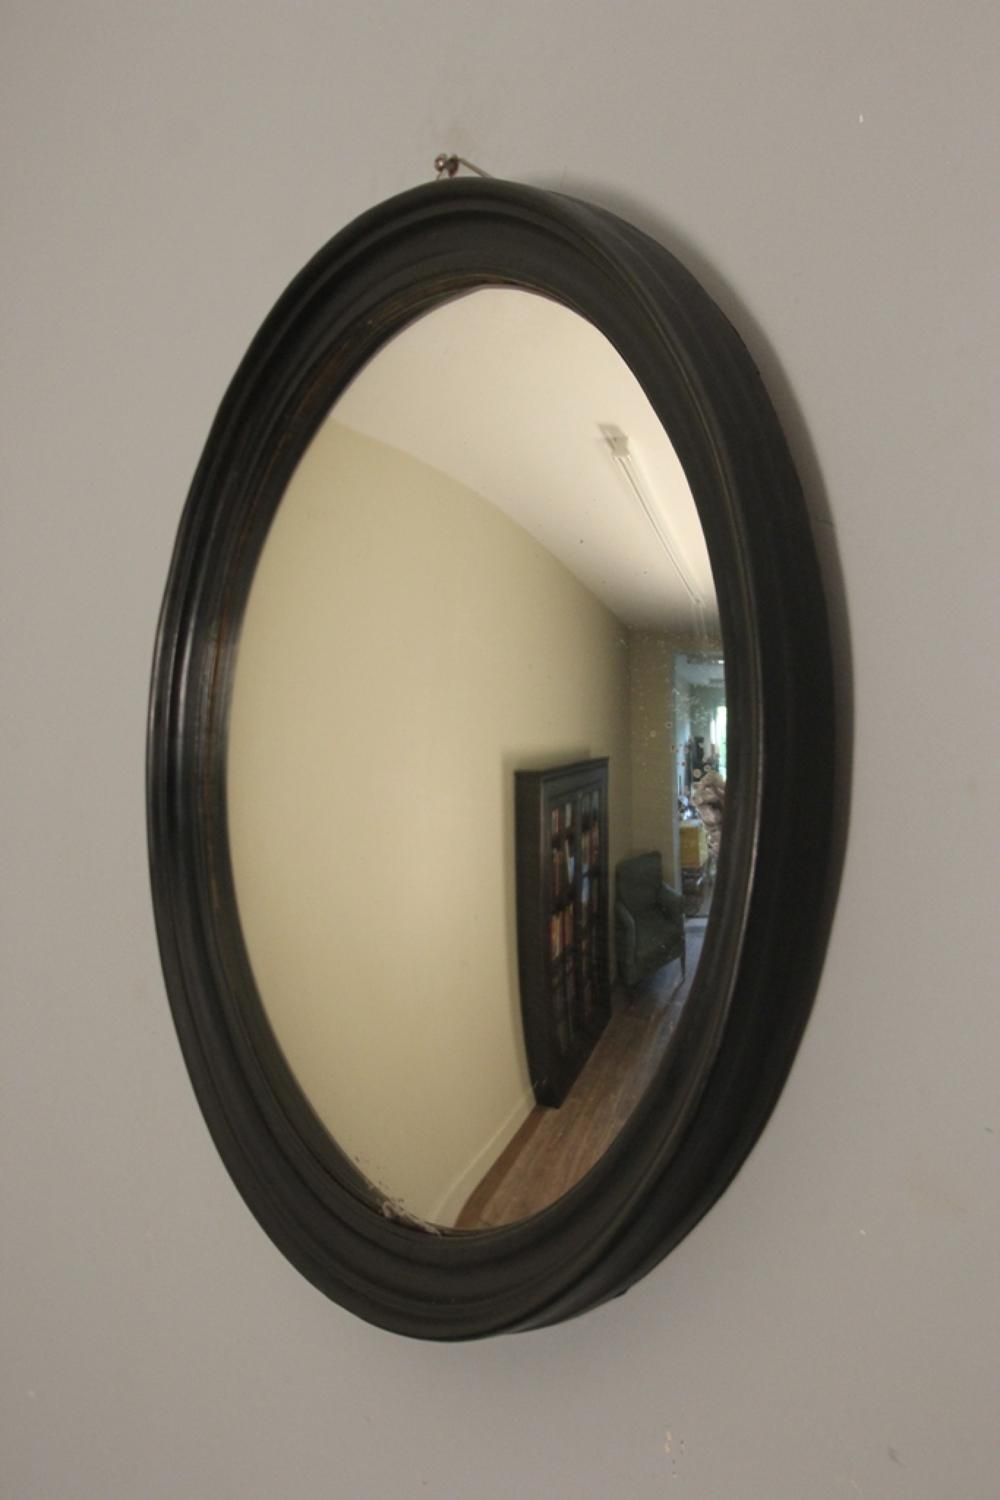 Convex Wall Mirror 19th c. convex wall mirror in mirrors & pictures